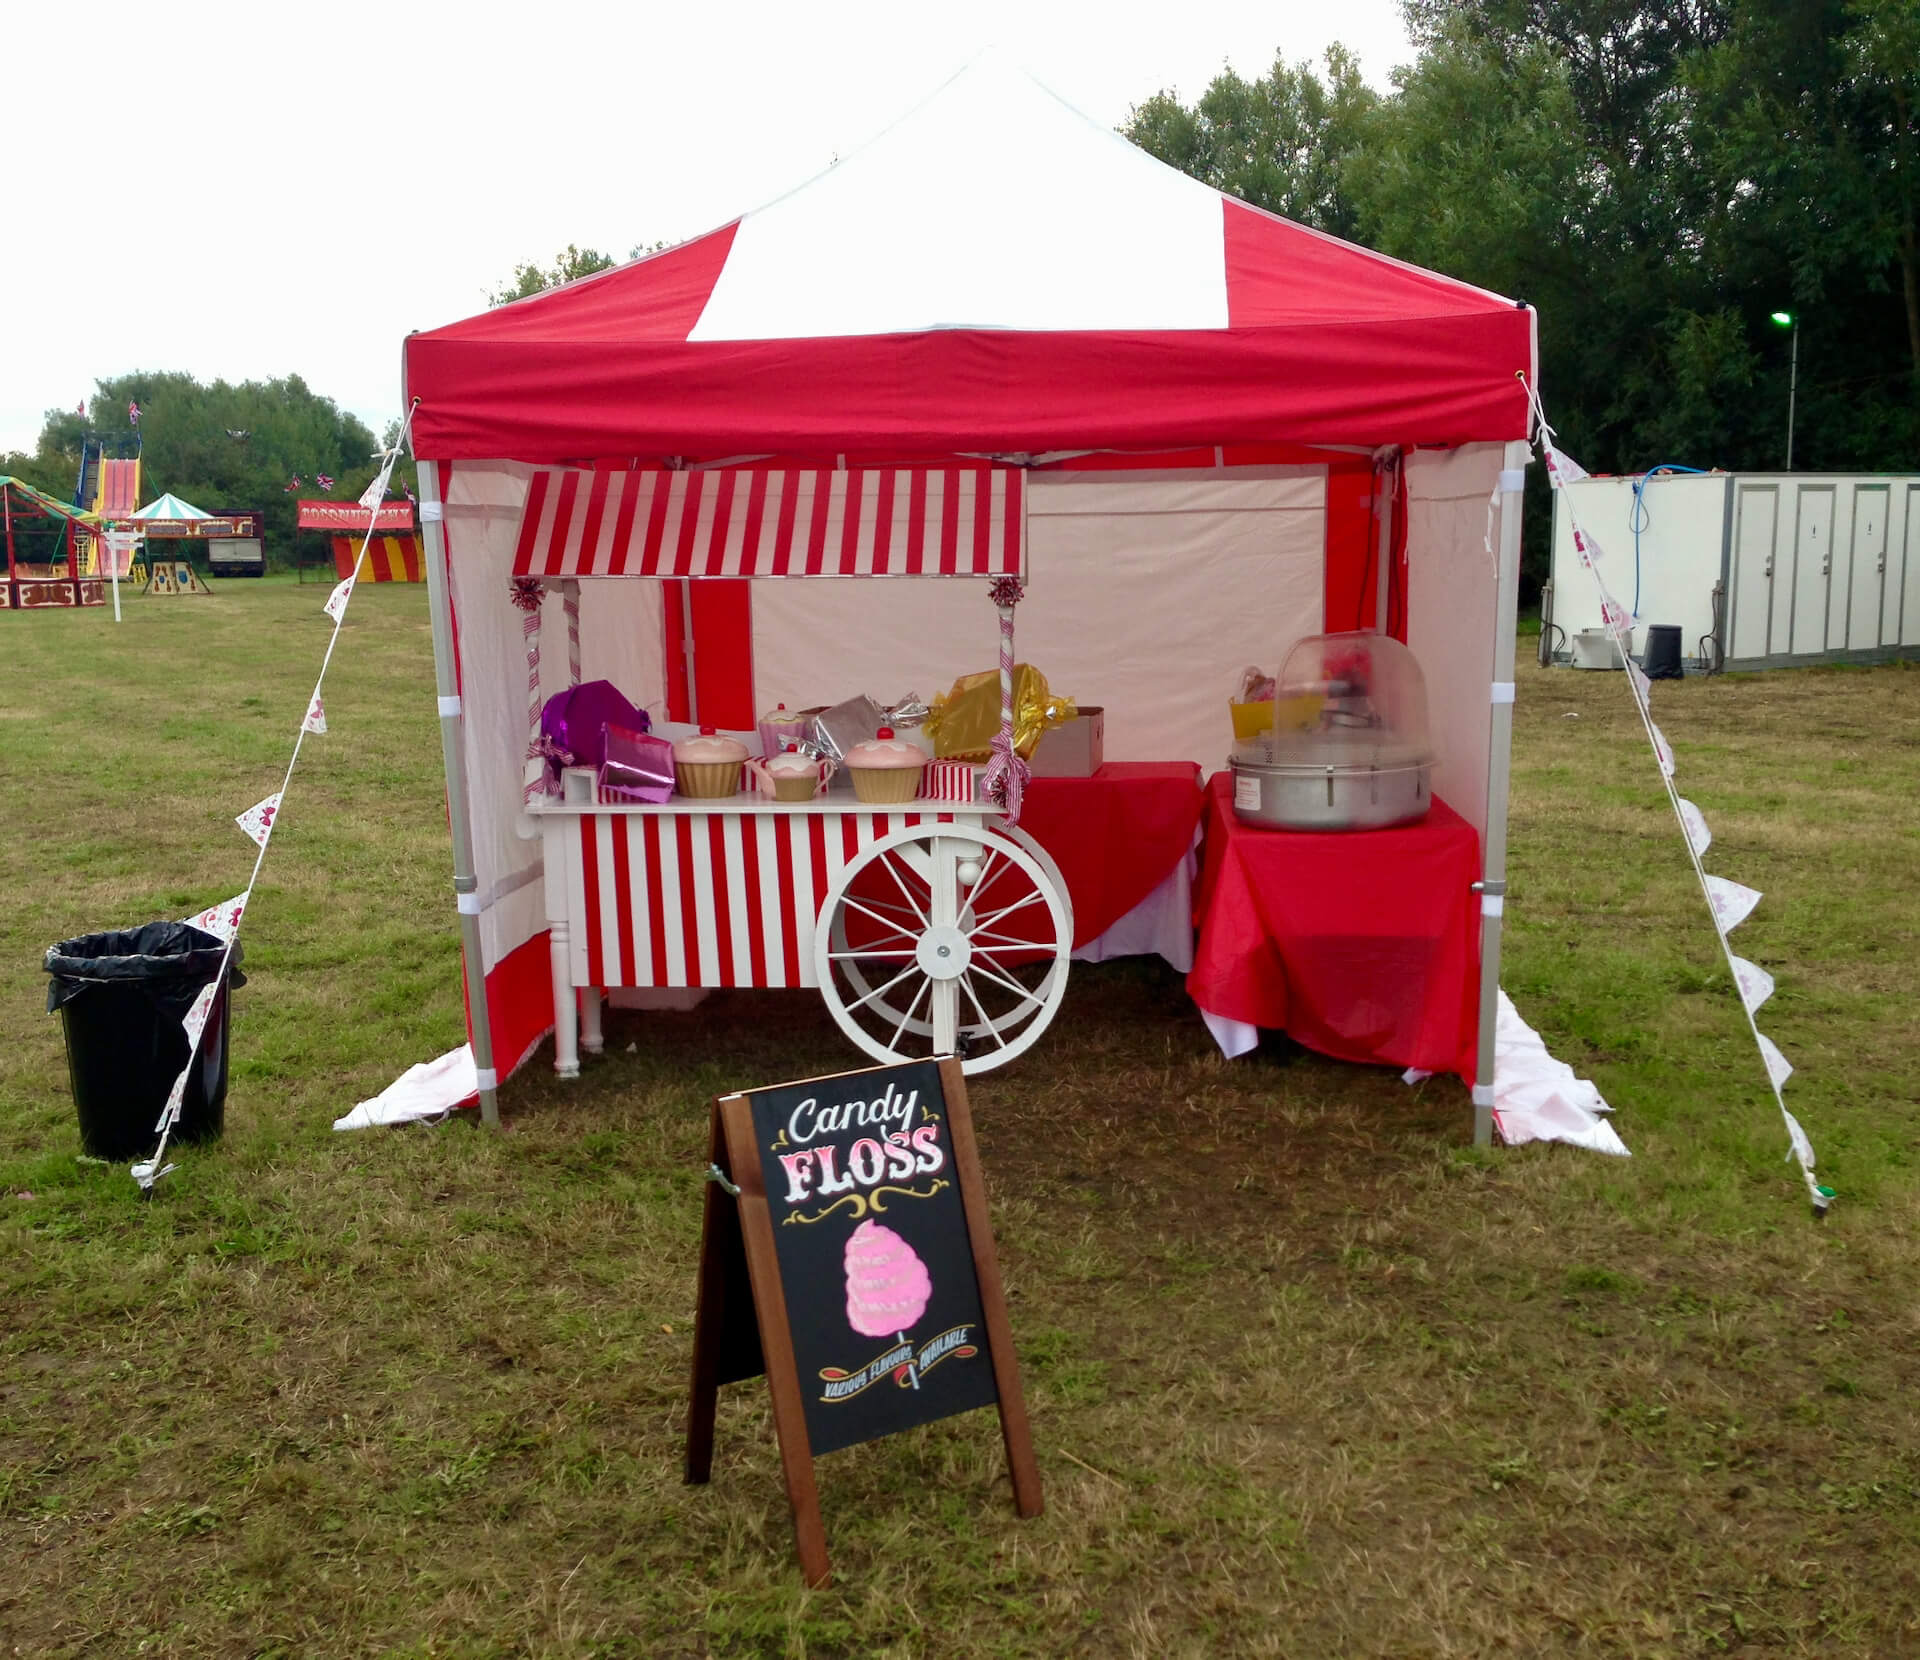 Candy floss stall hire